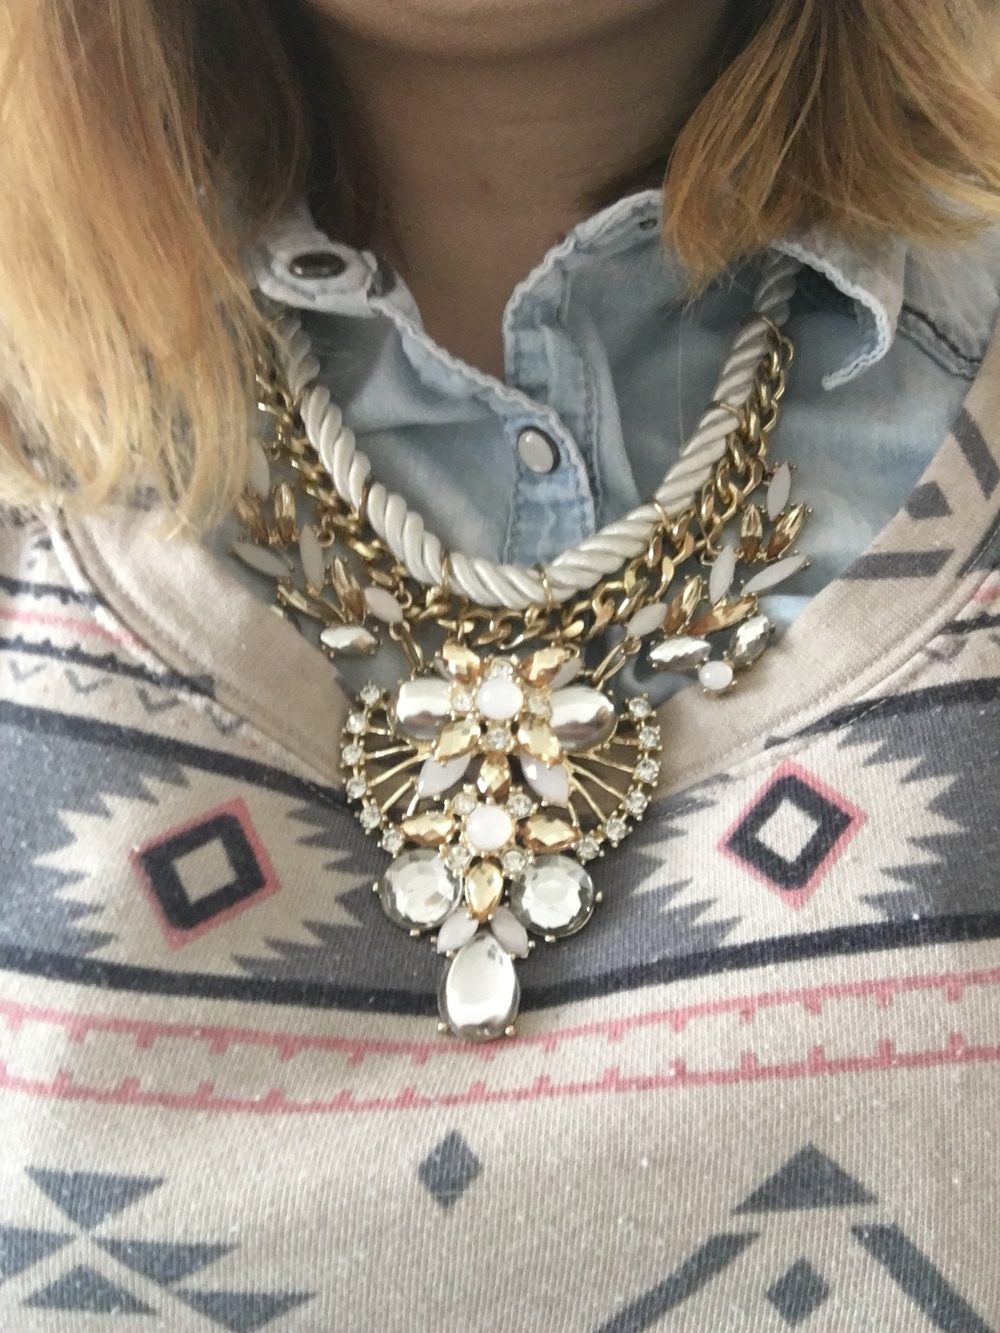 Necklace from Target, Aztec pattern sweater from Maurices, and light washed button up shirt from Maurices.